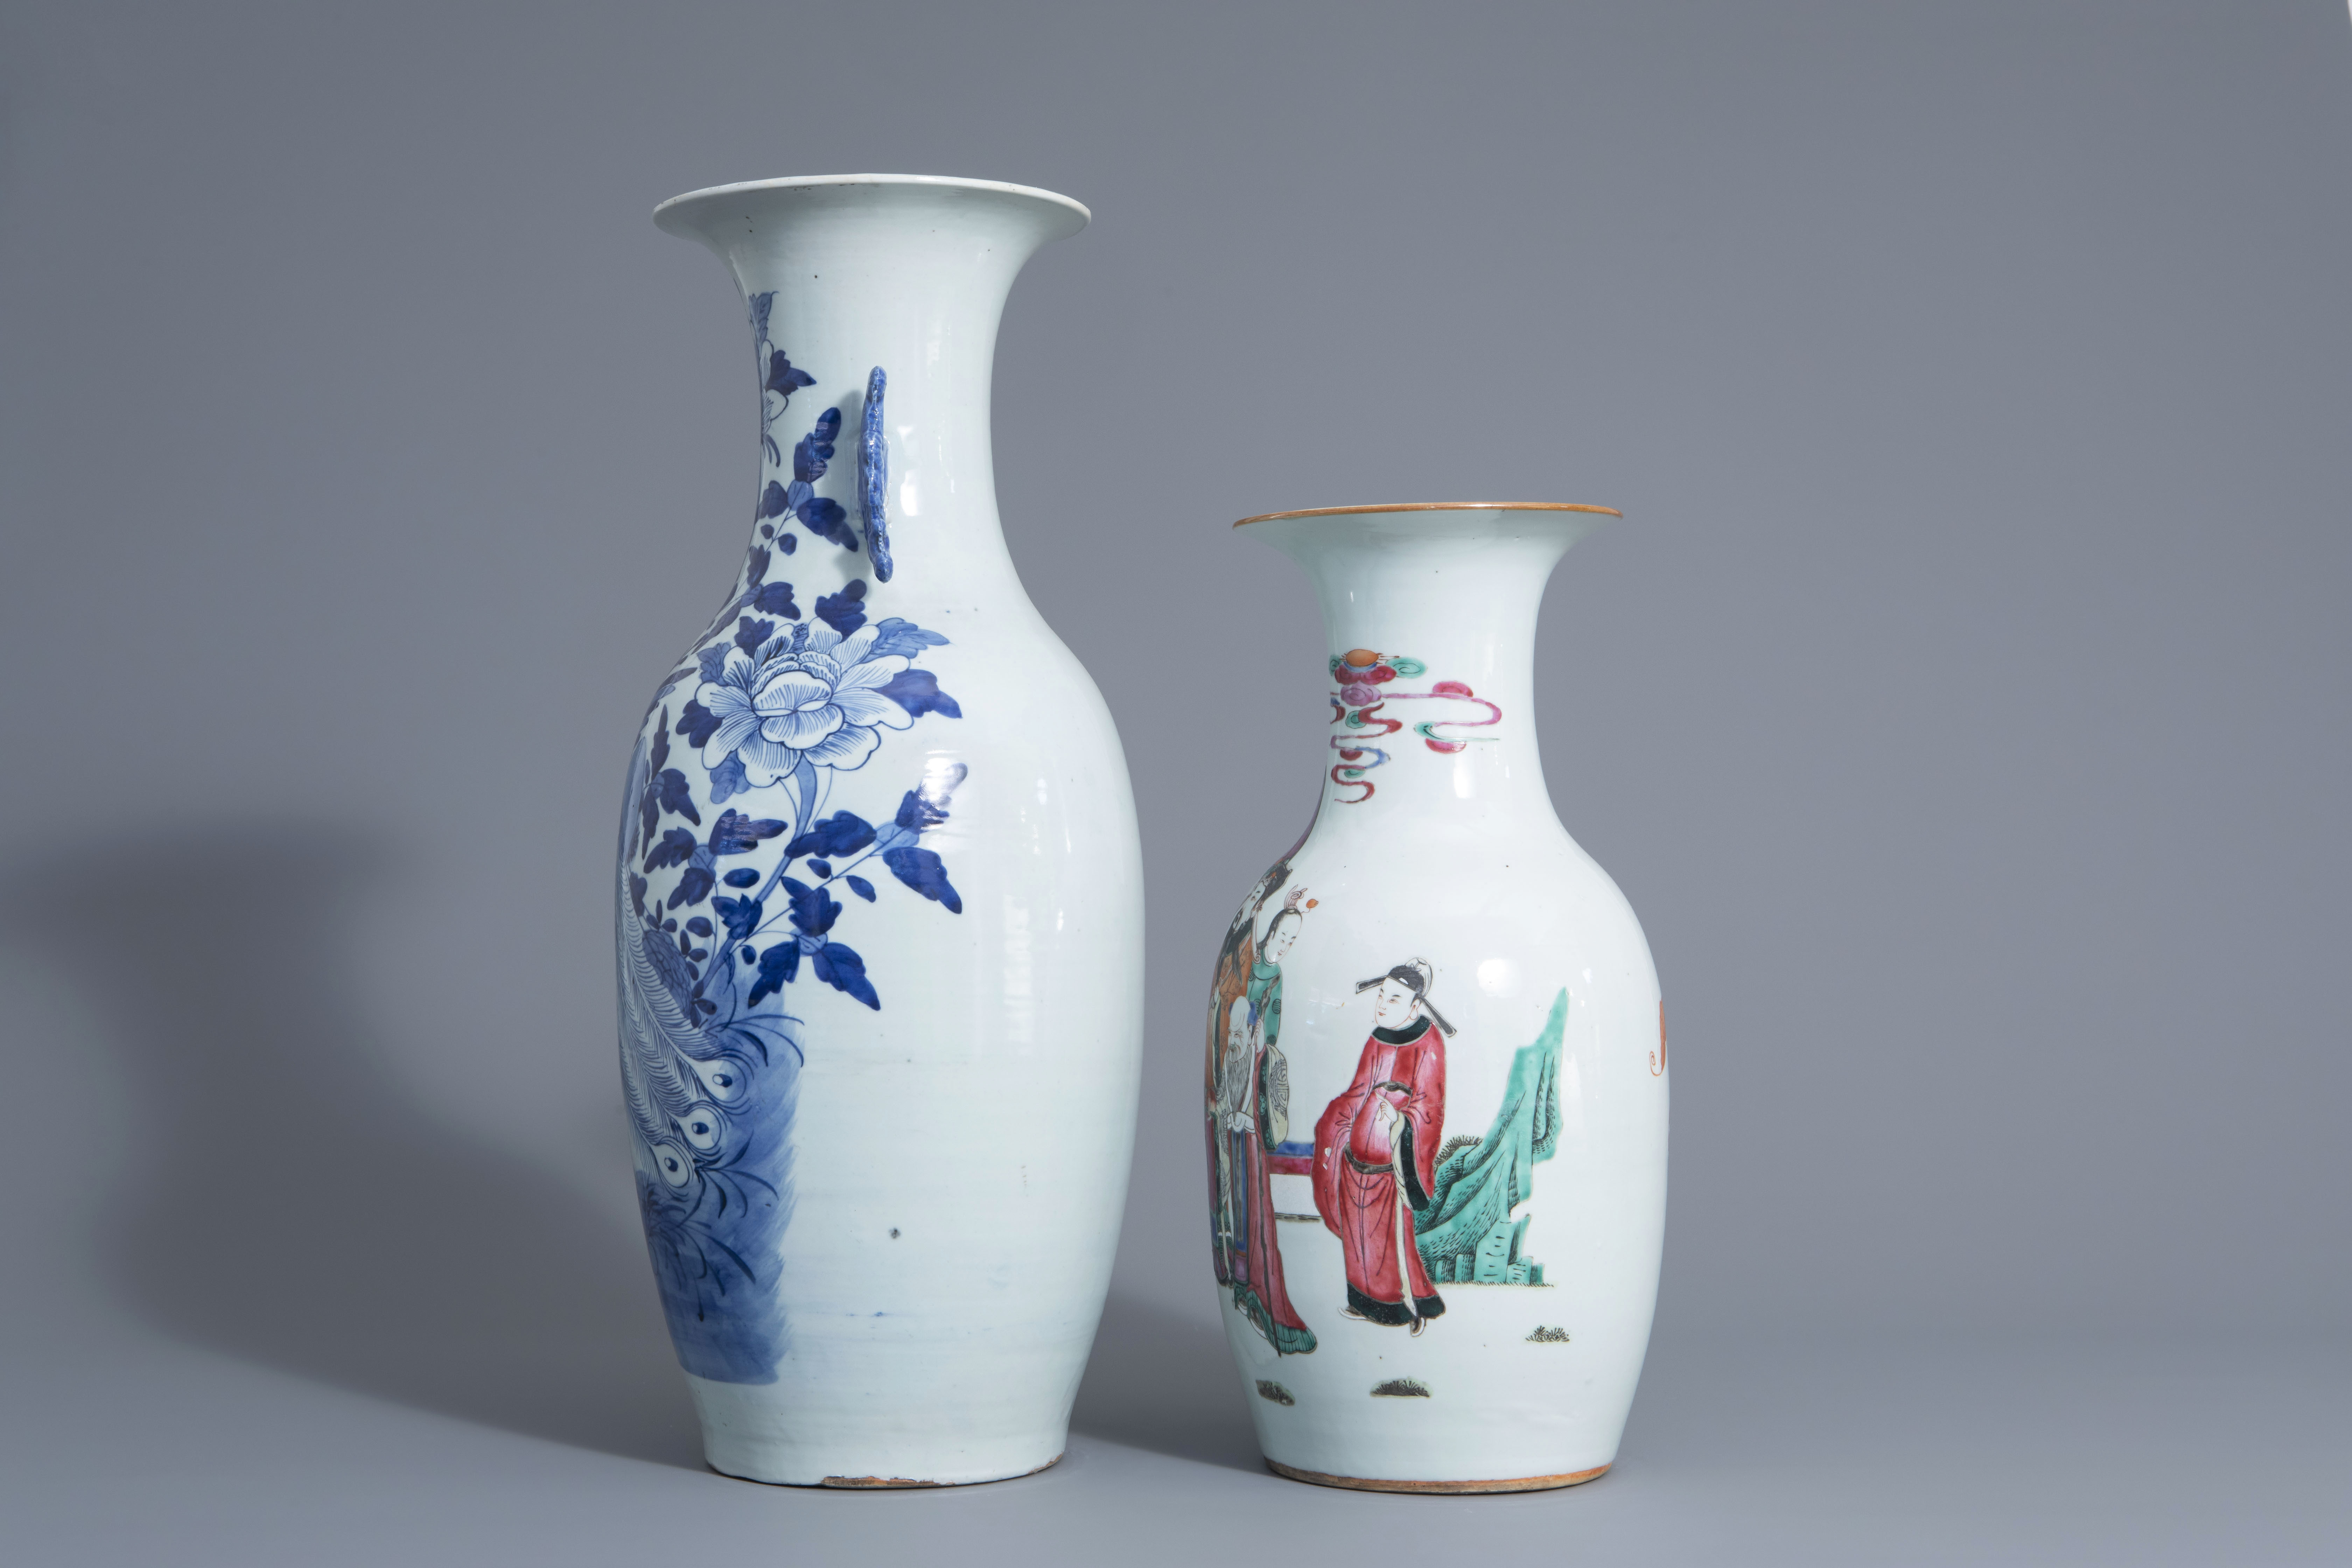 Two Chinese famille rose and blue and white vases with different designs, 19th/20th C. - Image 4 of 6